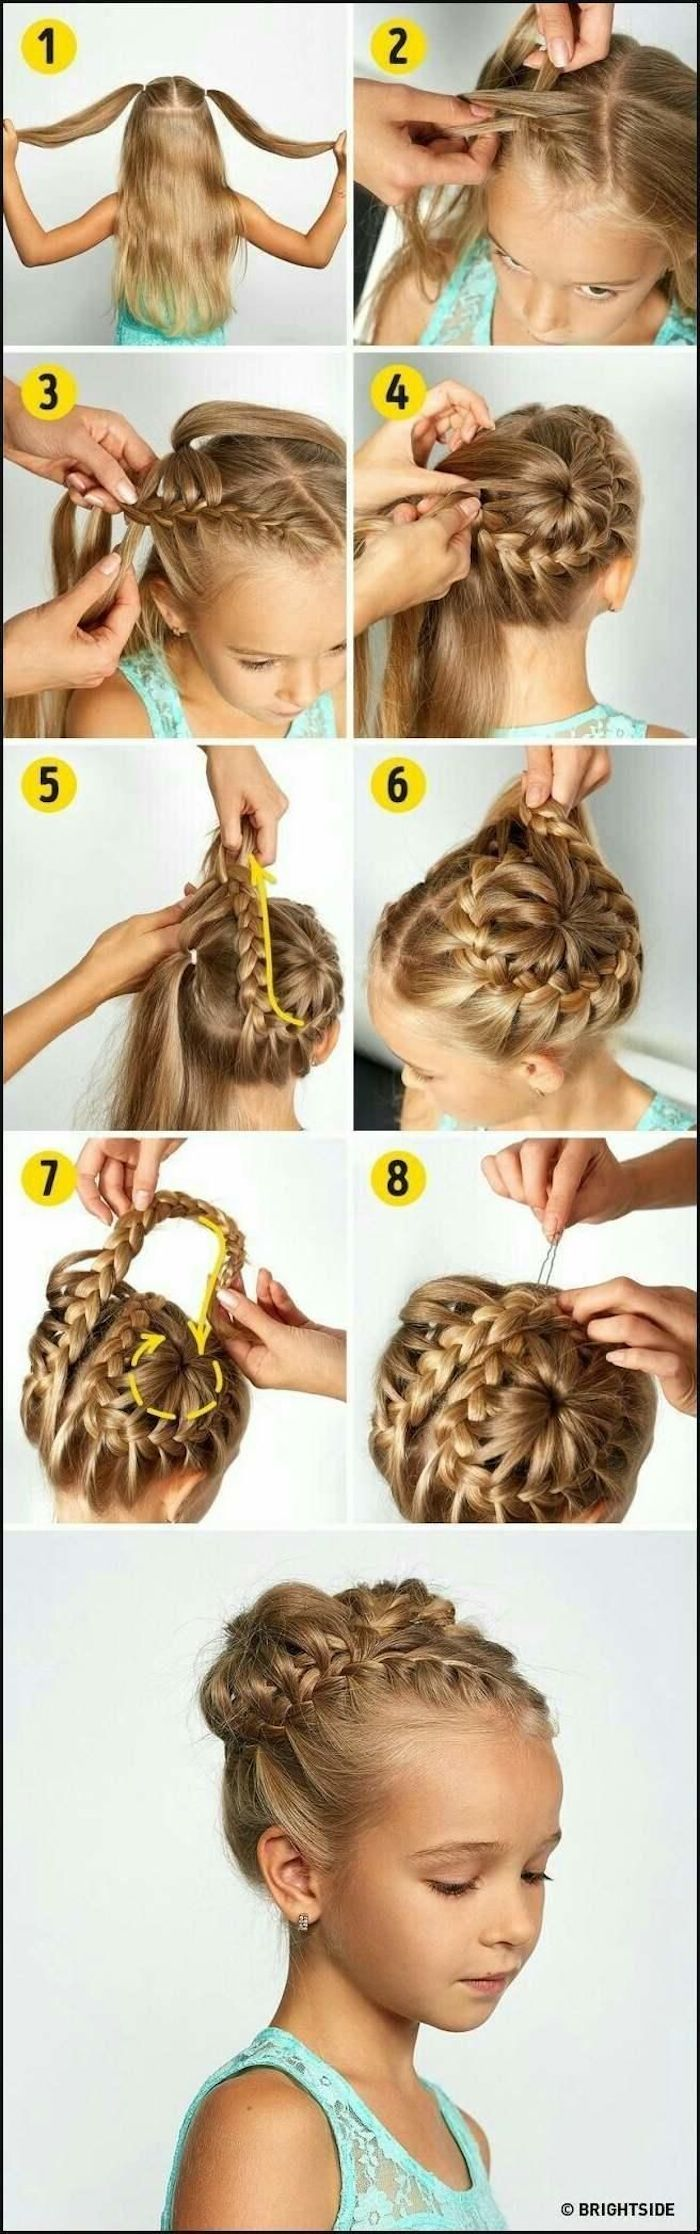 Braid Hairstyles For Kids White - Hair Designs, Famele and ...